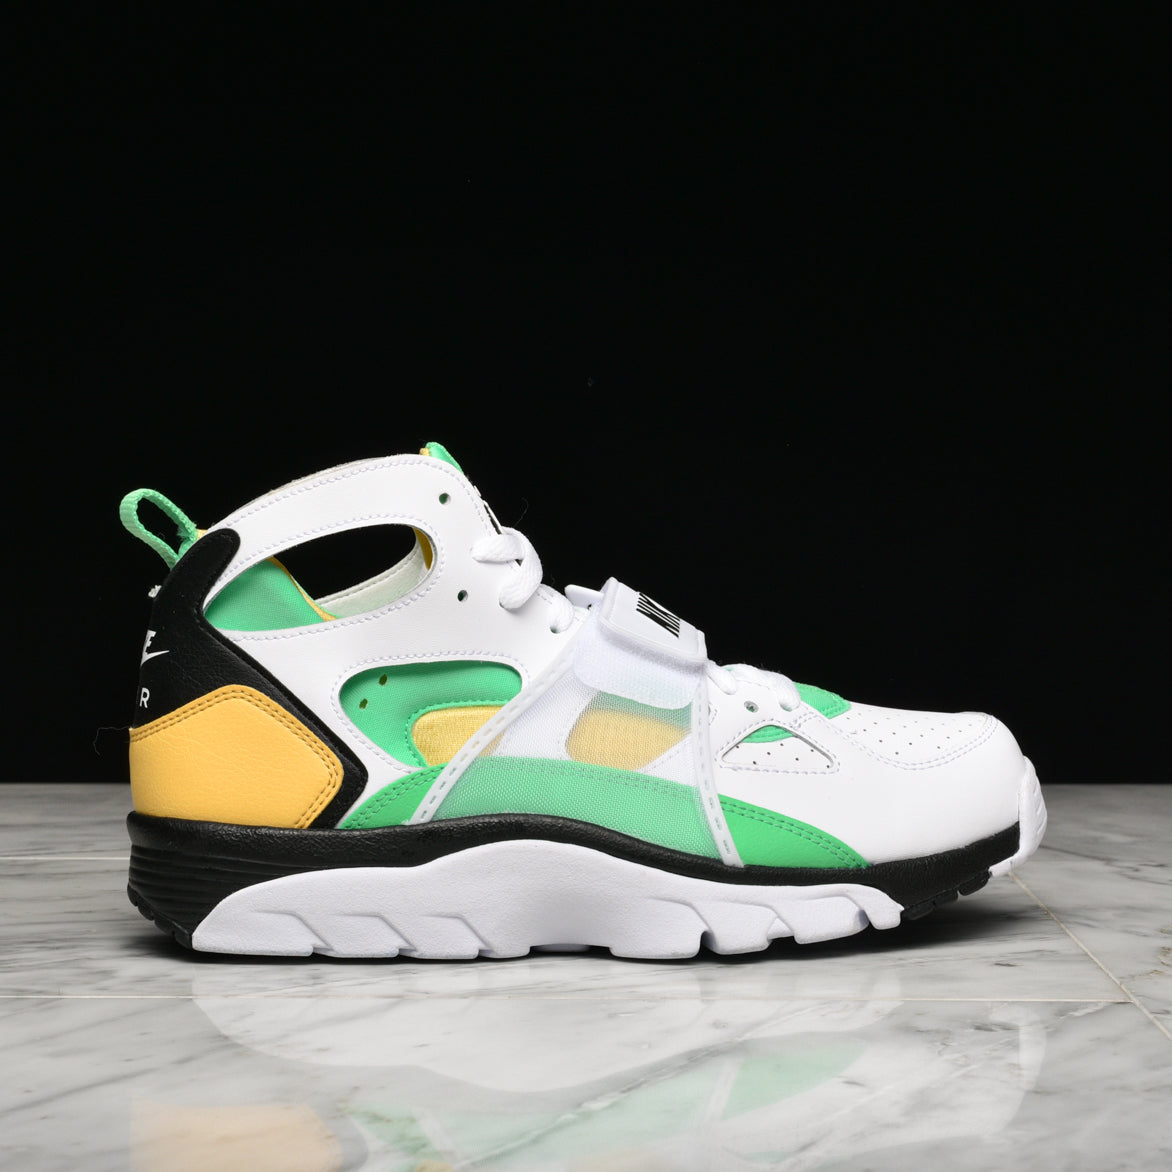 AIR TRAINER HUARACHE - WHITE / ELECTRO GREEN / GOLD